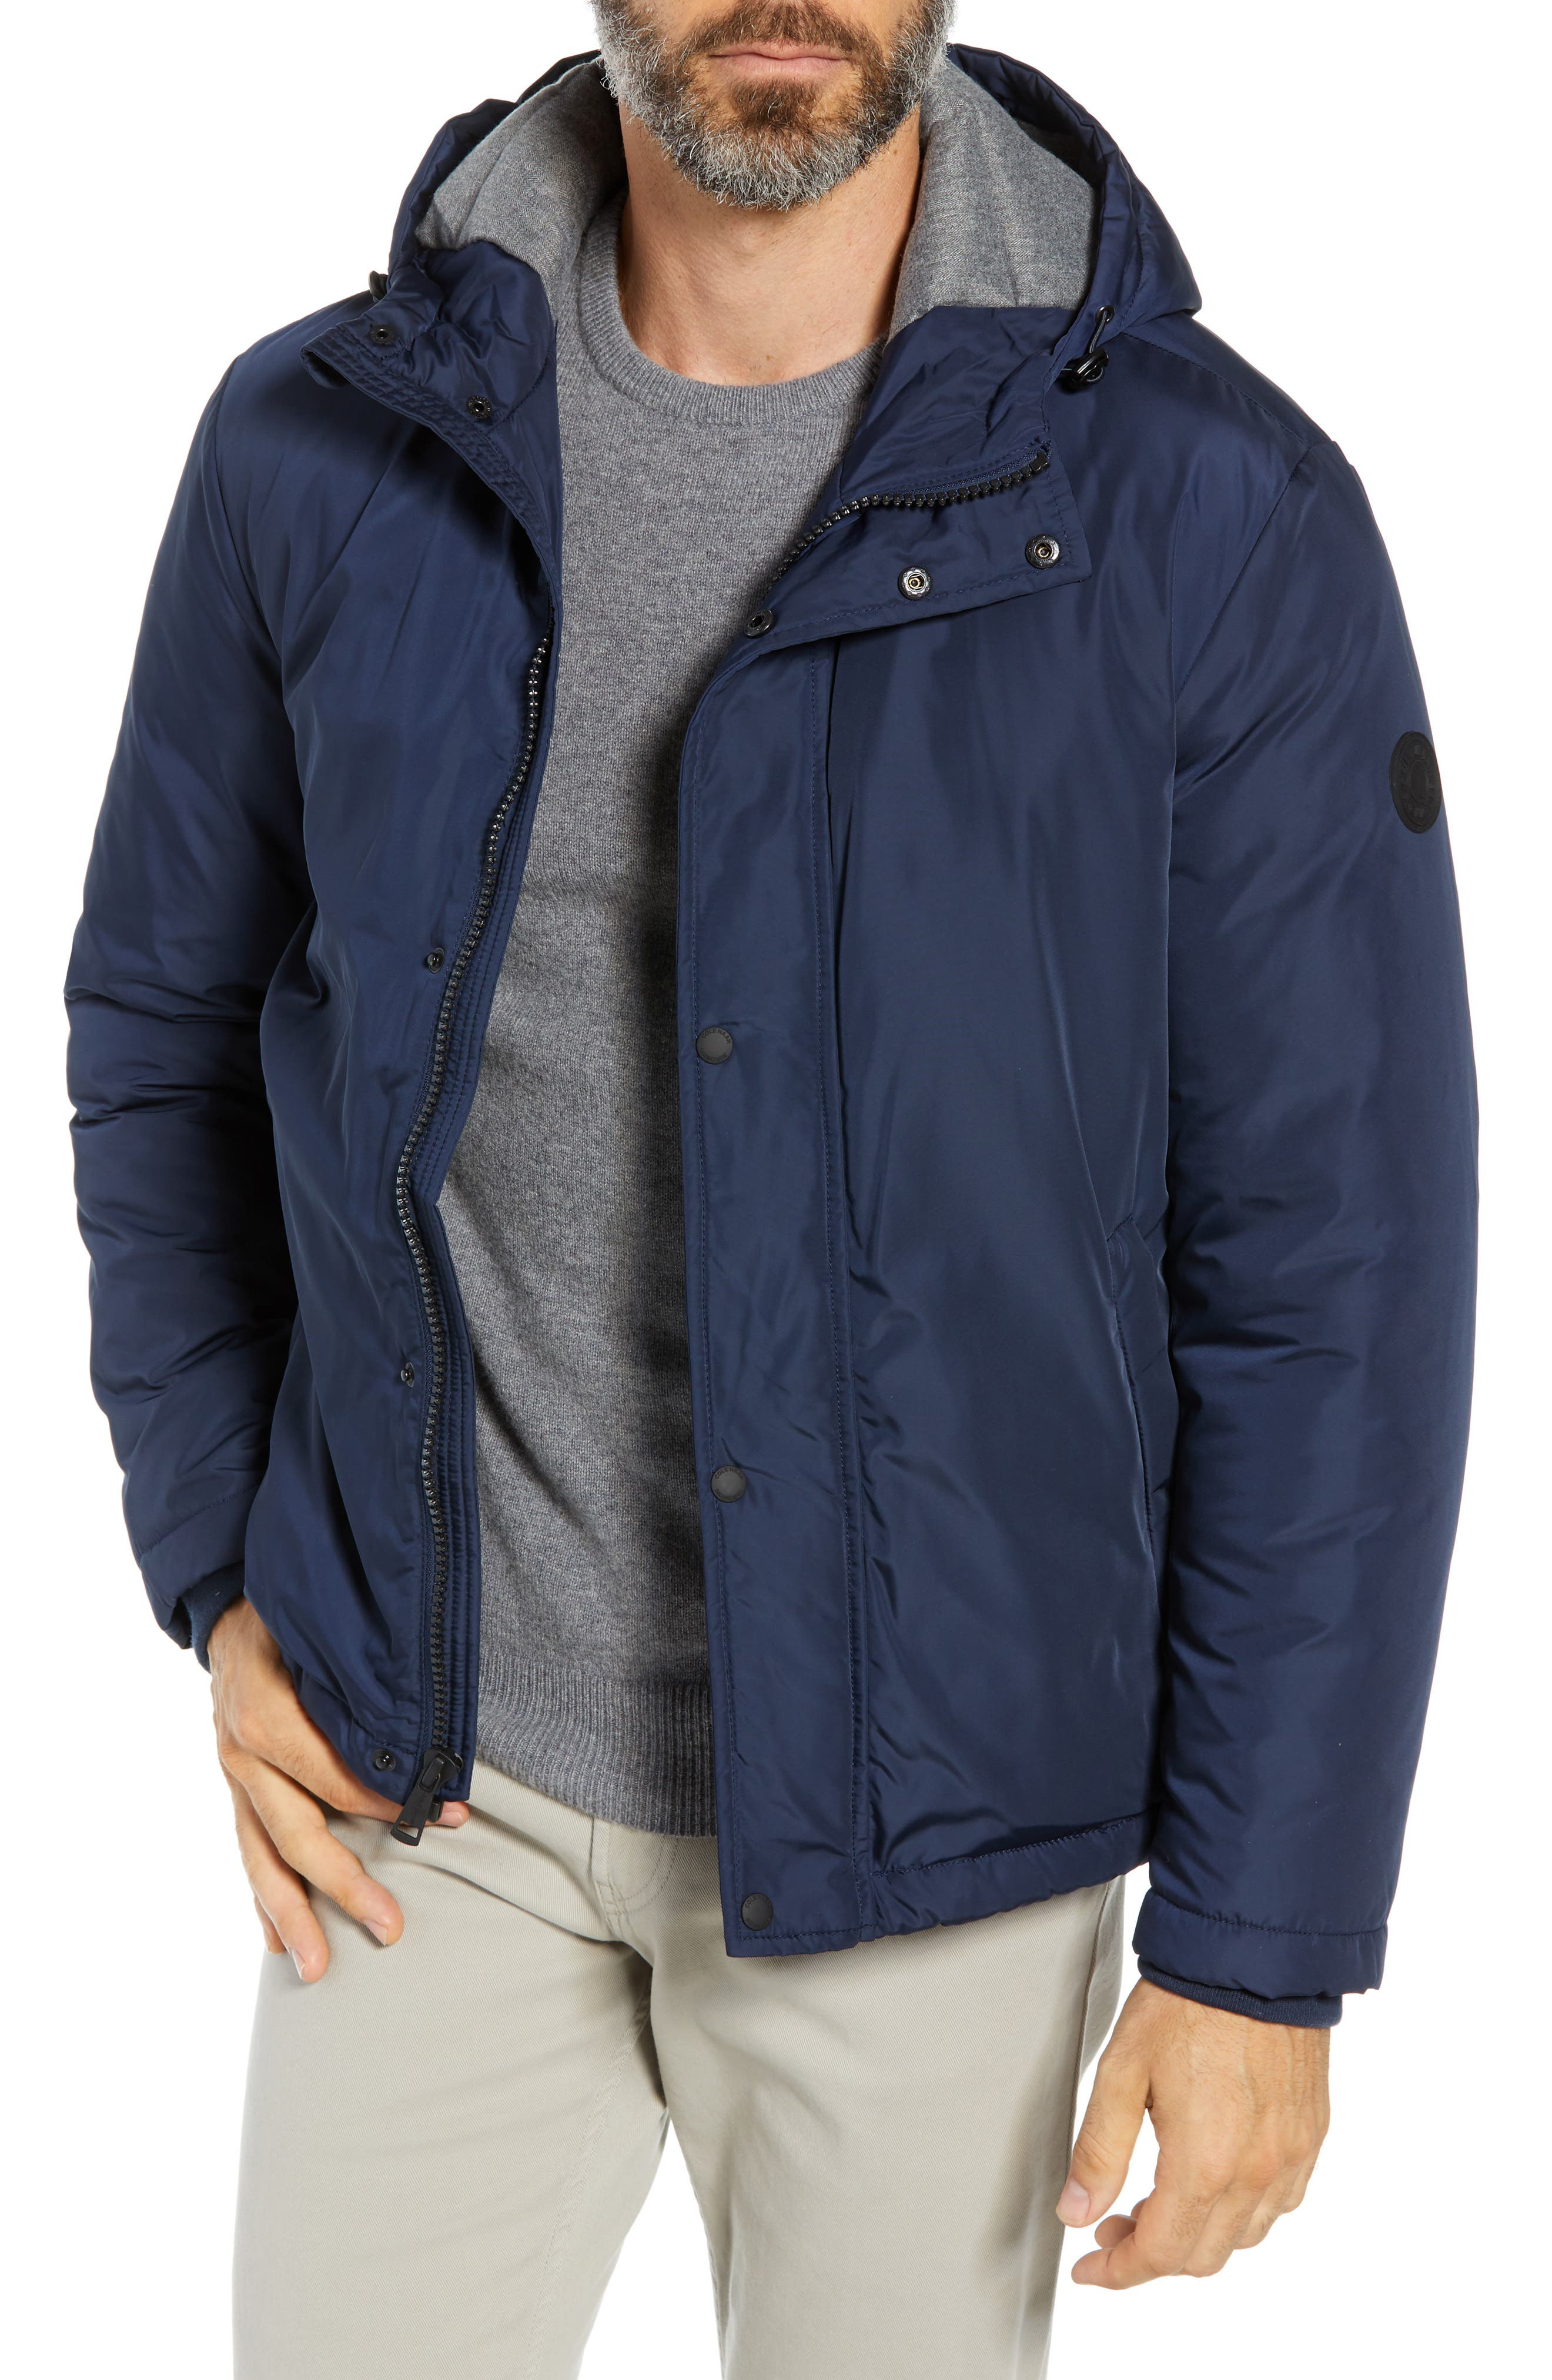 Cole Haan Water Resistant Insulated Jacket, Blue